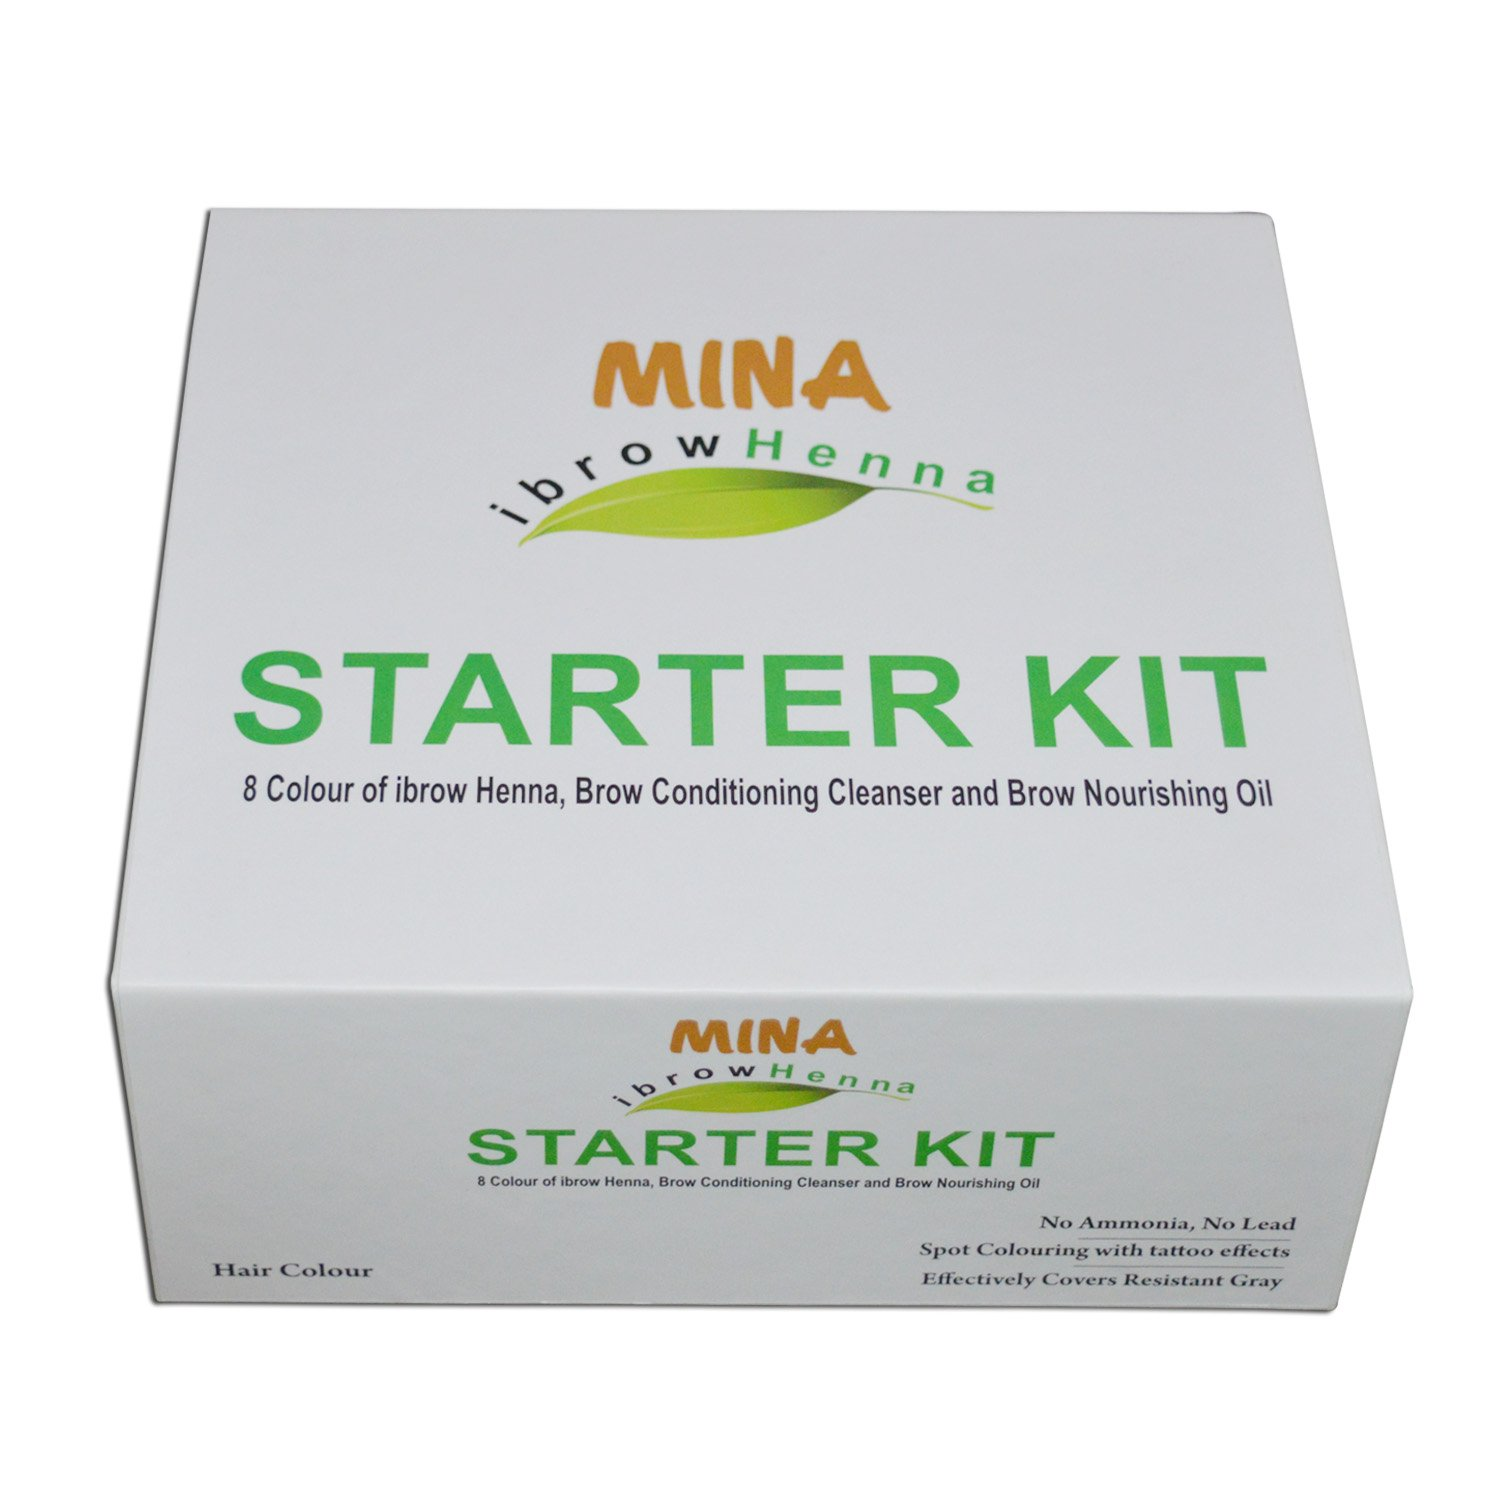 MINA Ibrow Henna Starter Kit (8 Colors of Ibrow henna,Brow Conditioning Cleanser & Brow Nourishing Oil